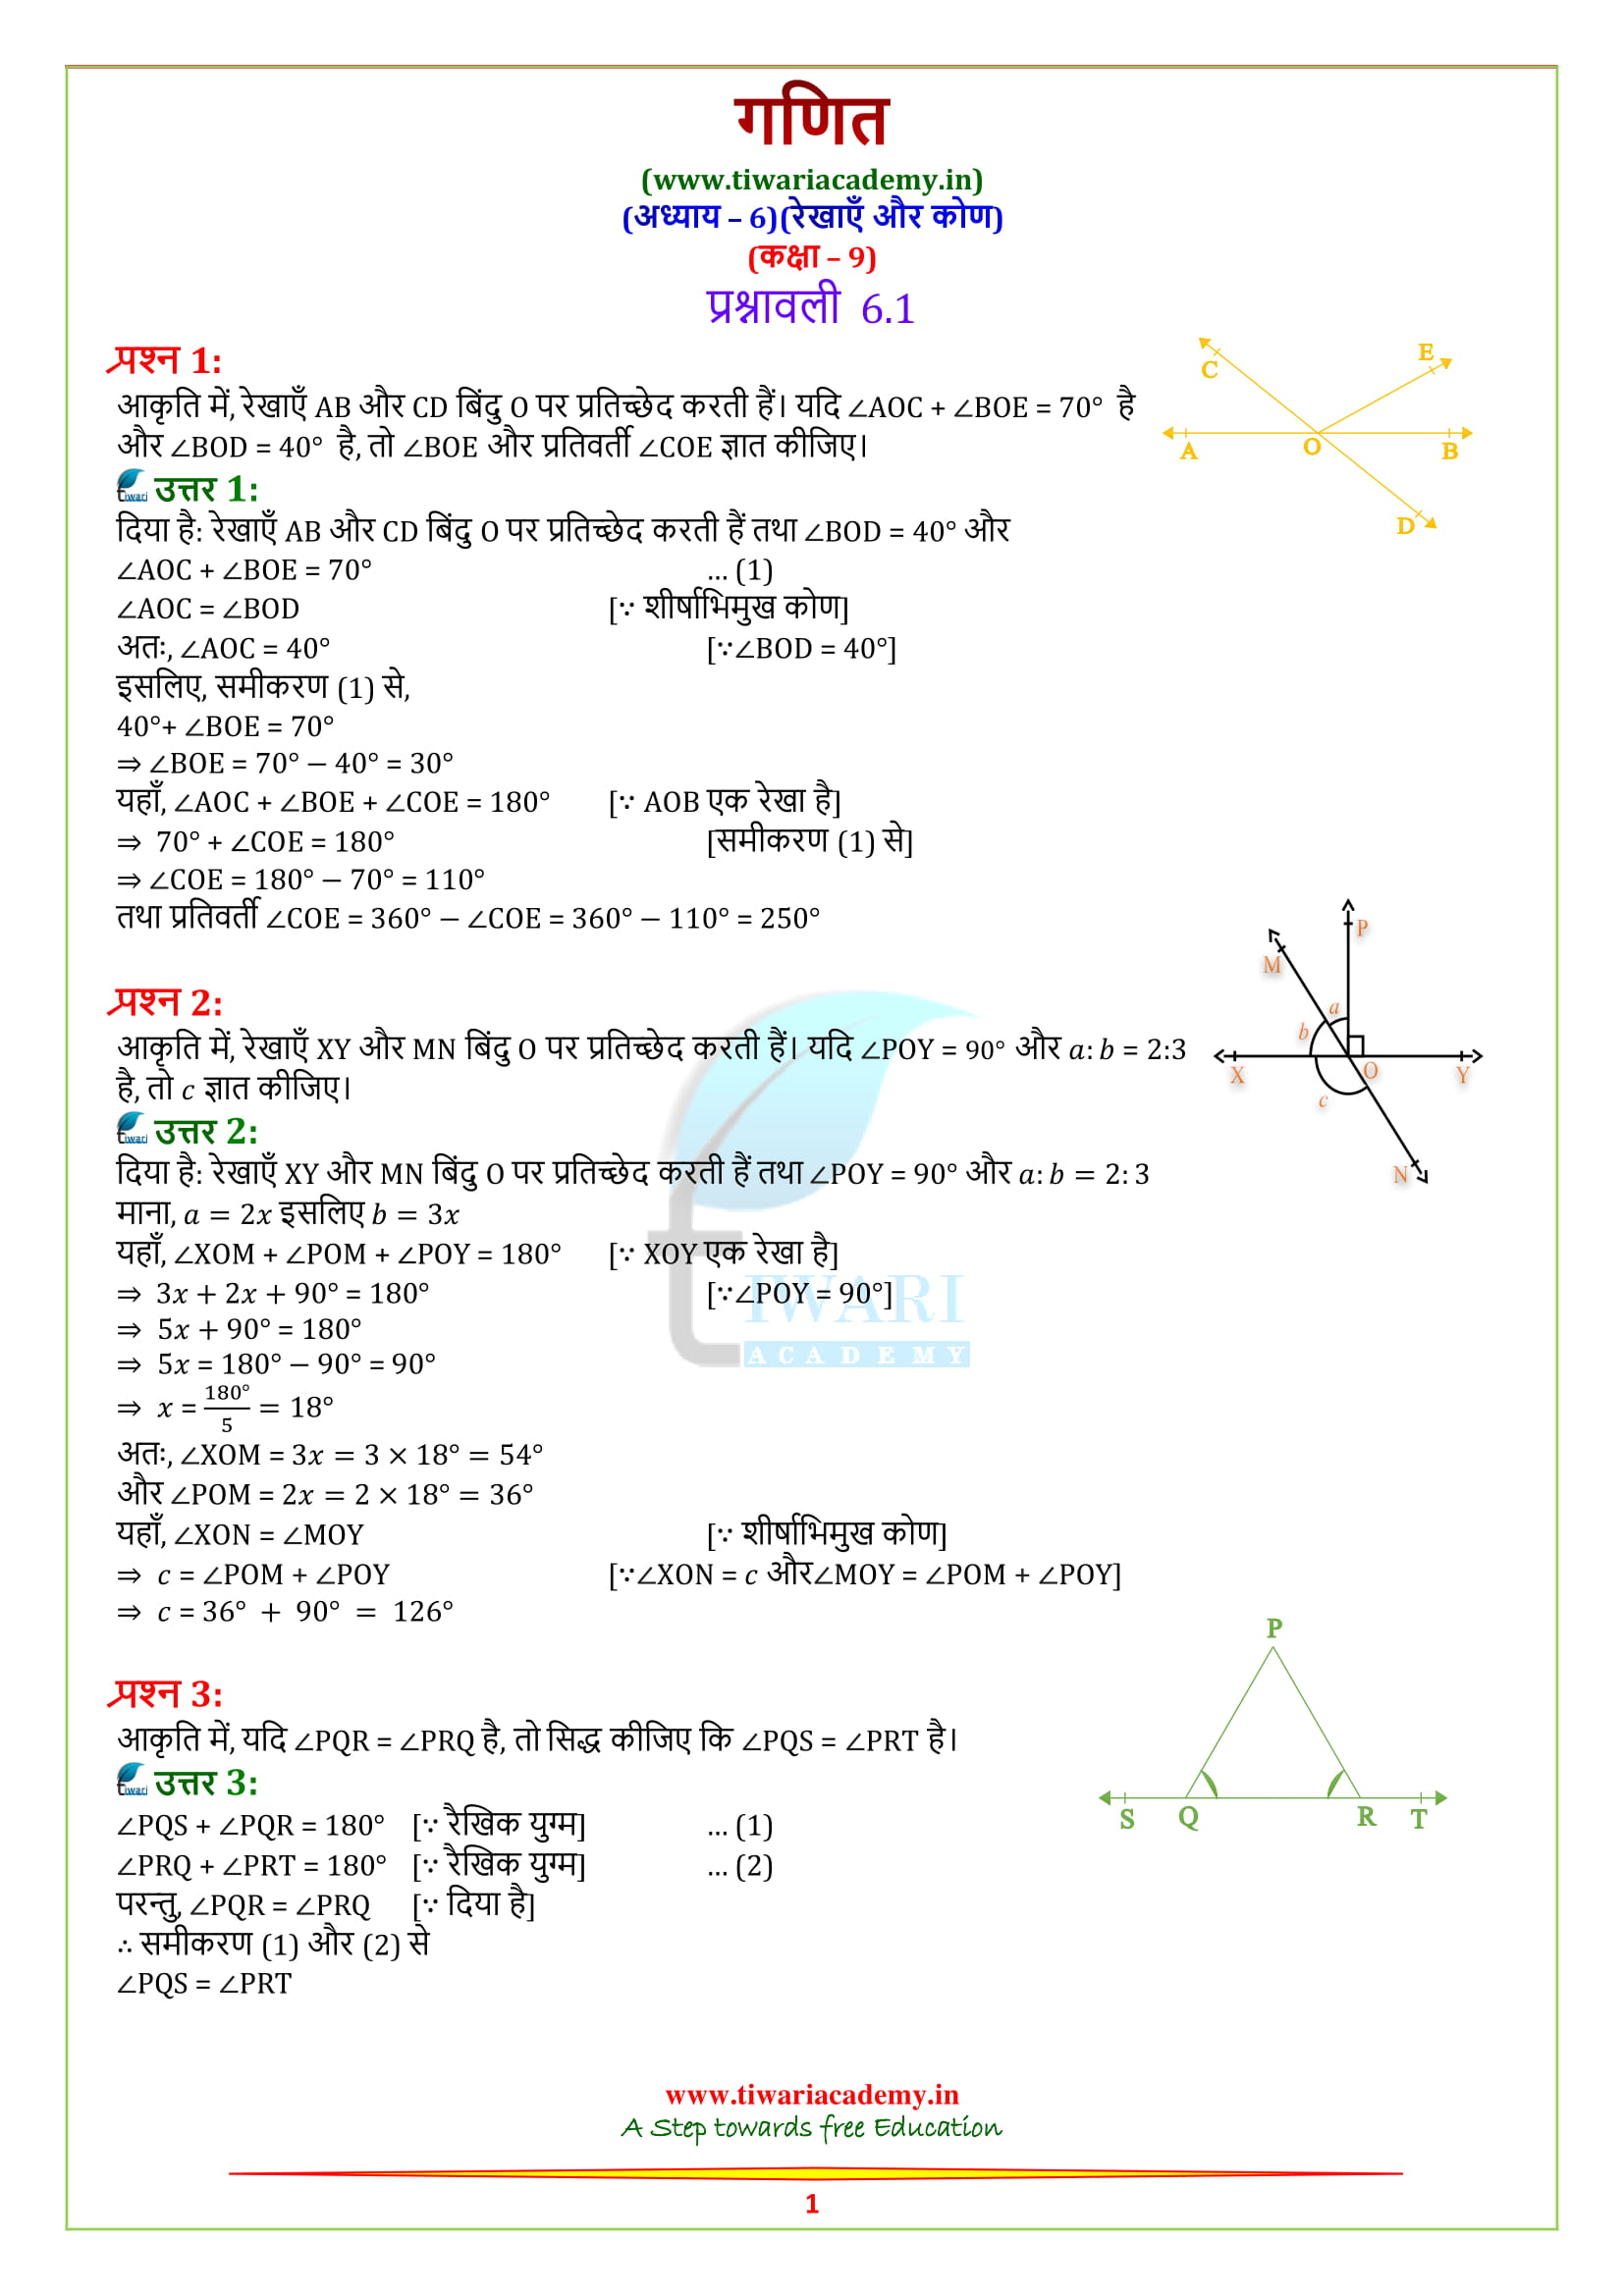 9 Maths Chapter 6 Exercise 6.1 solutions in hindi